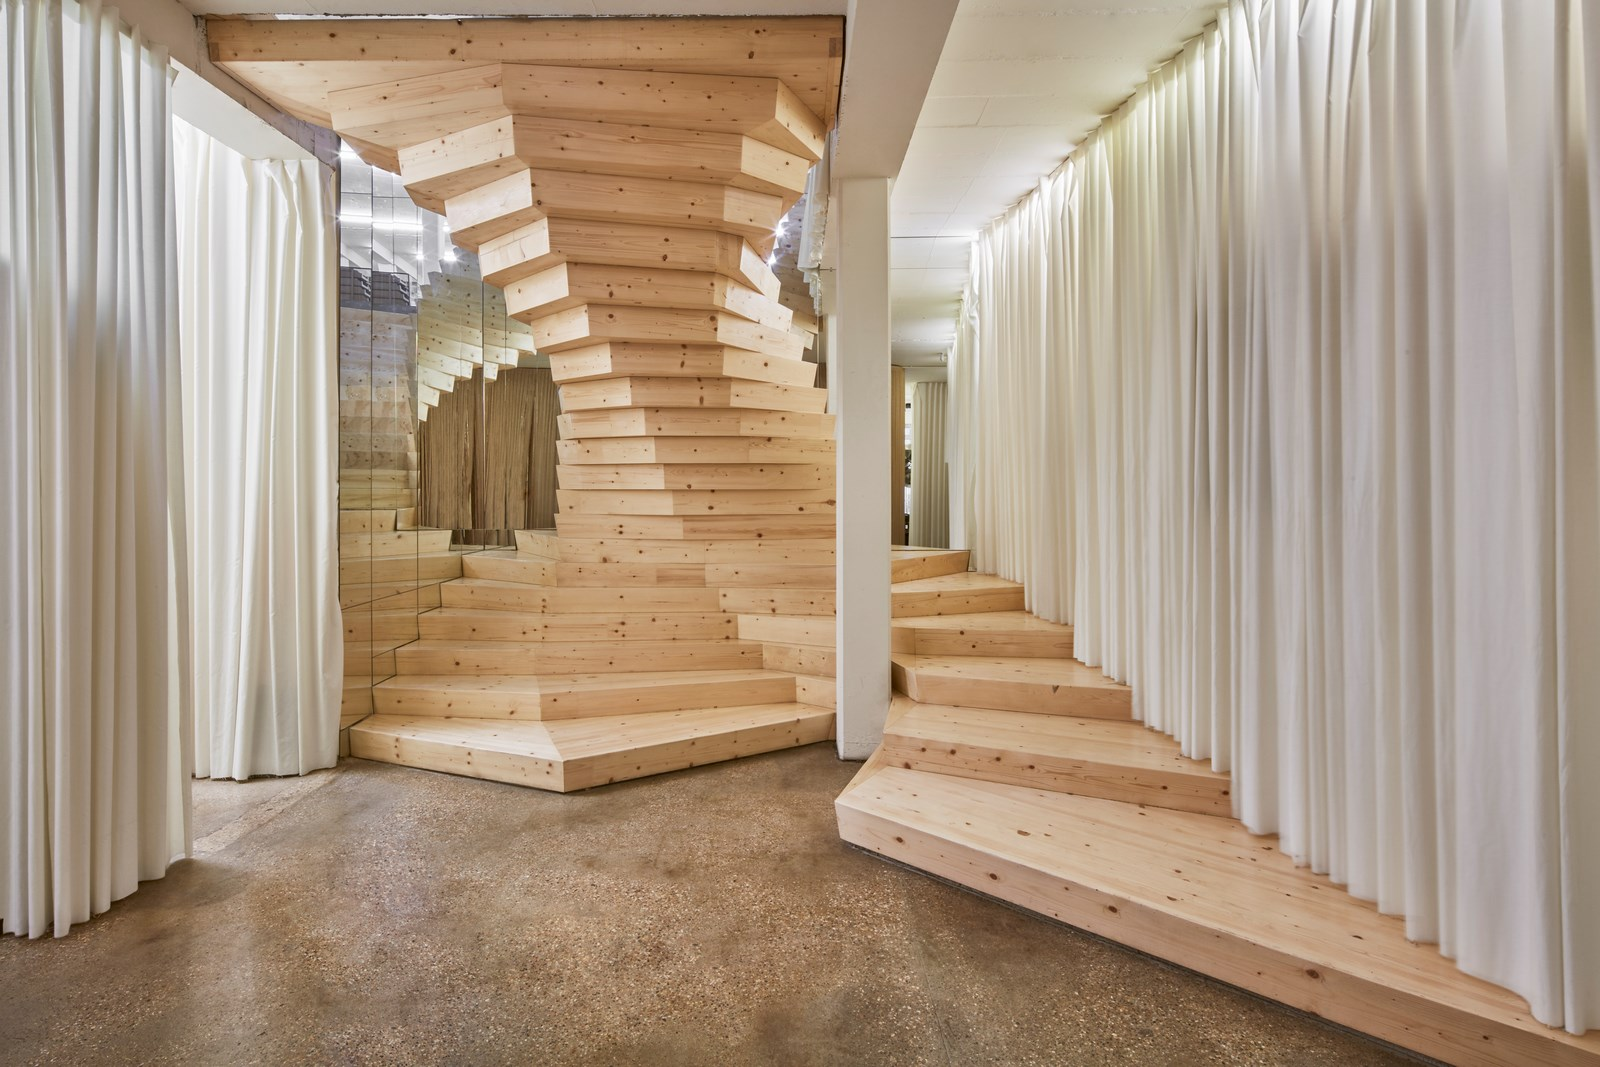 00 ACME-Staircase-01-Ed Reeve (Copy)